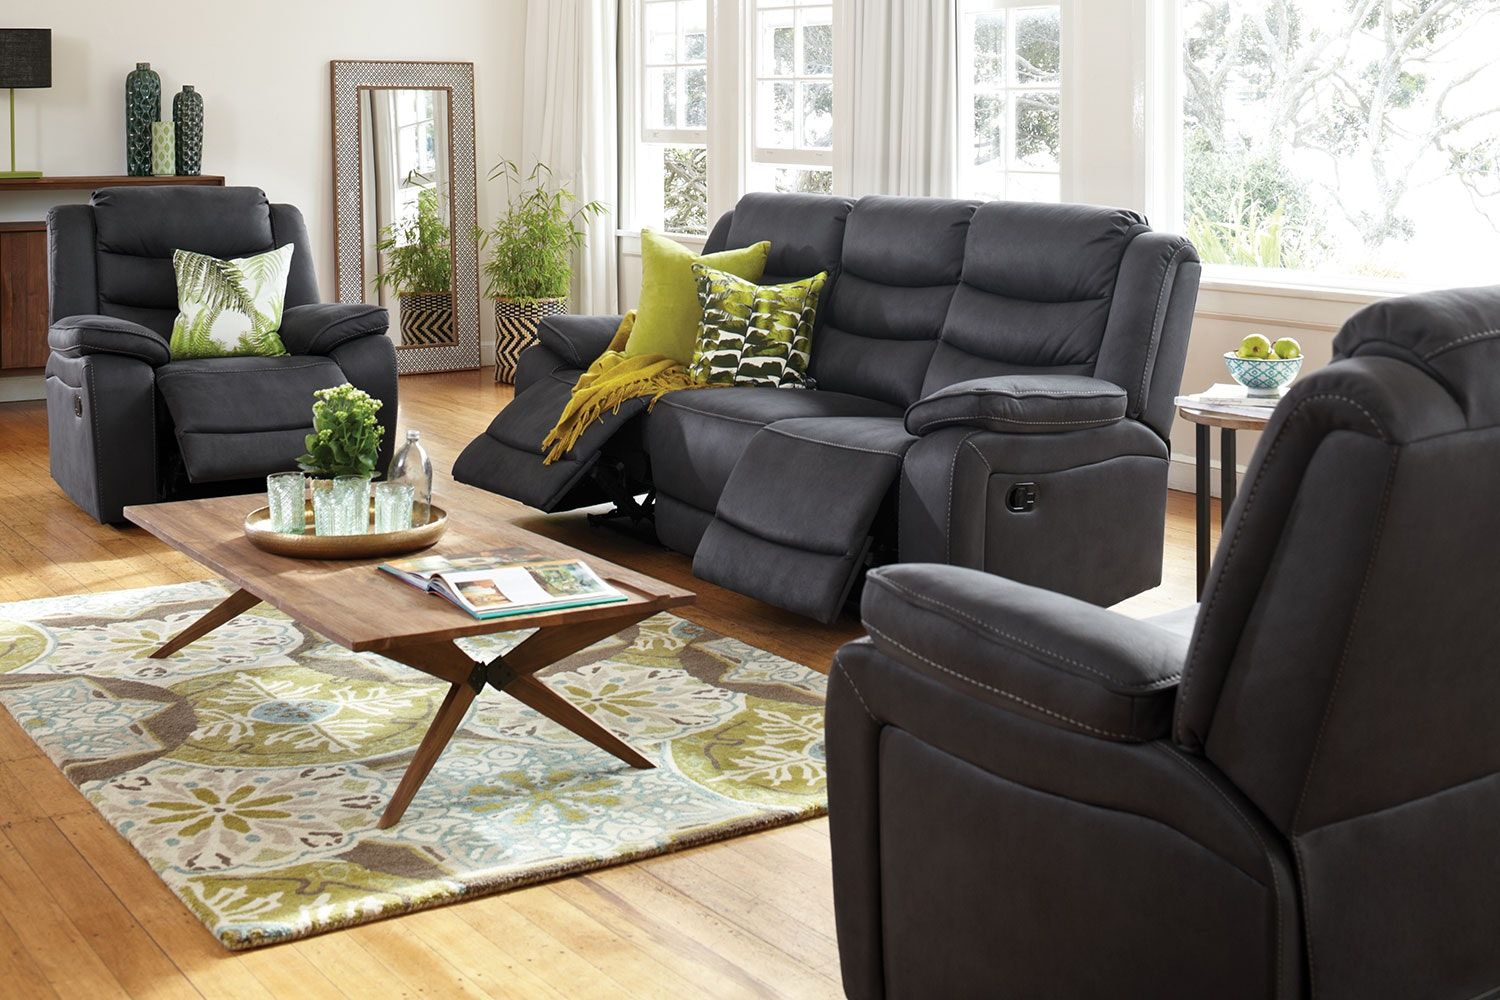 Tyler 3 Piece Fabric Recliner Lounge Suite & Tyler 3 Piece Fabric Recliner Lounge Suite | Harvey Norman New Zealand islam-shia.org